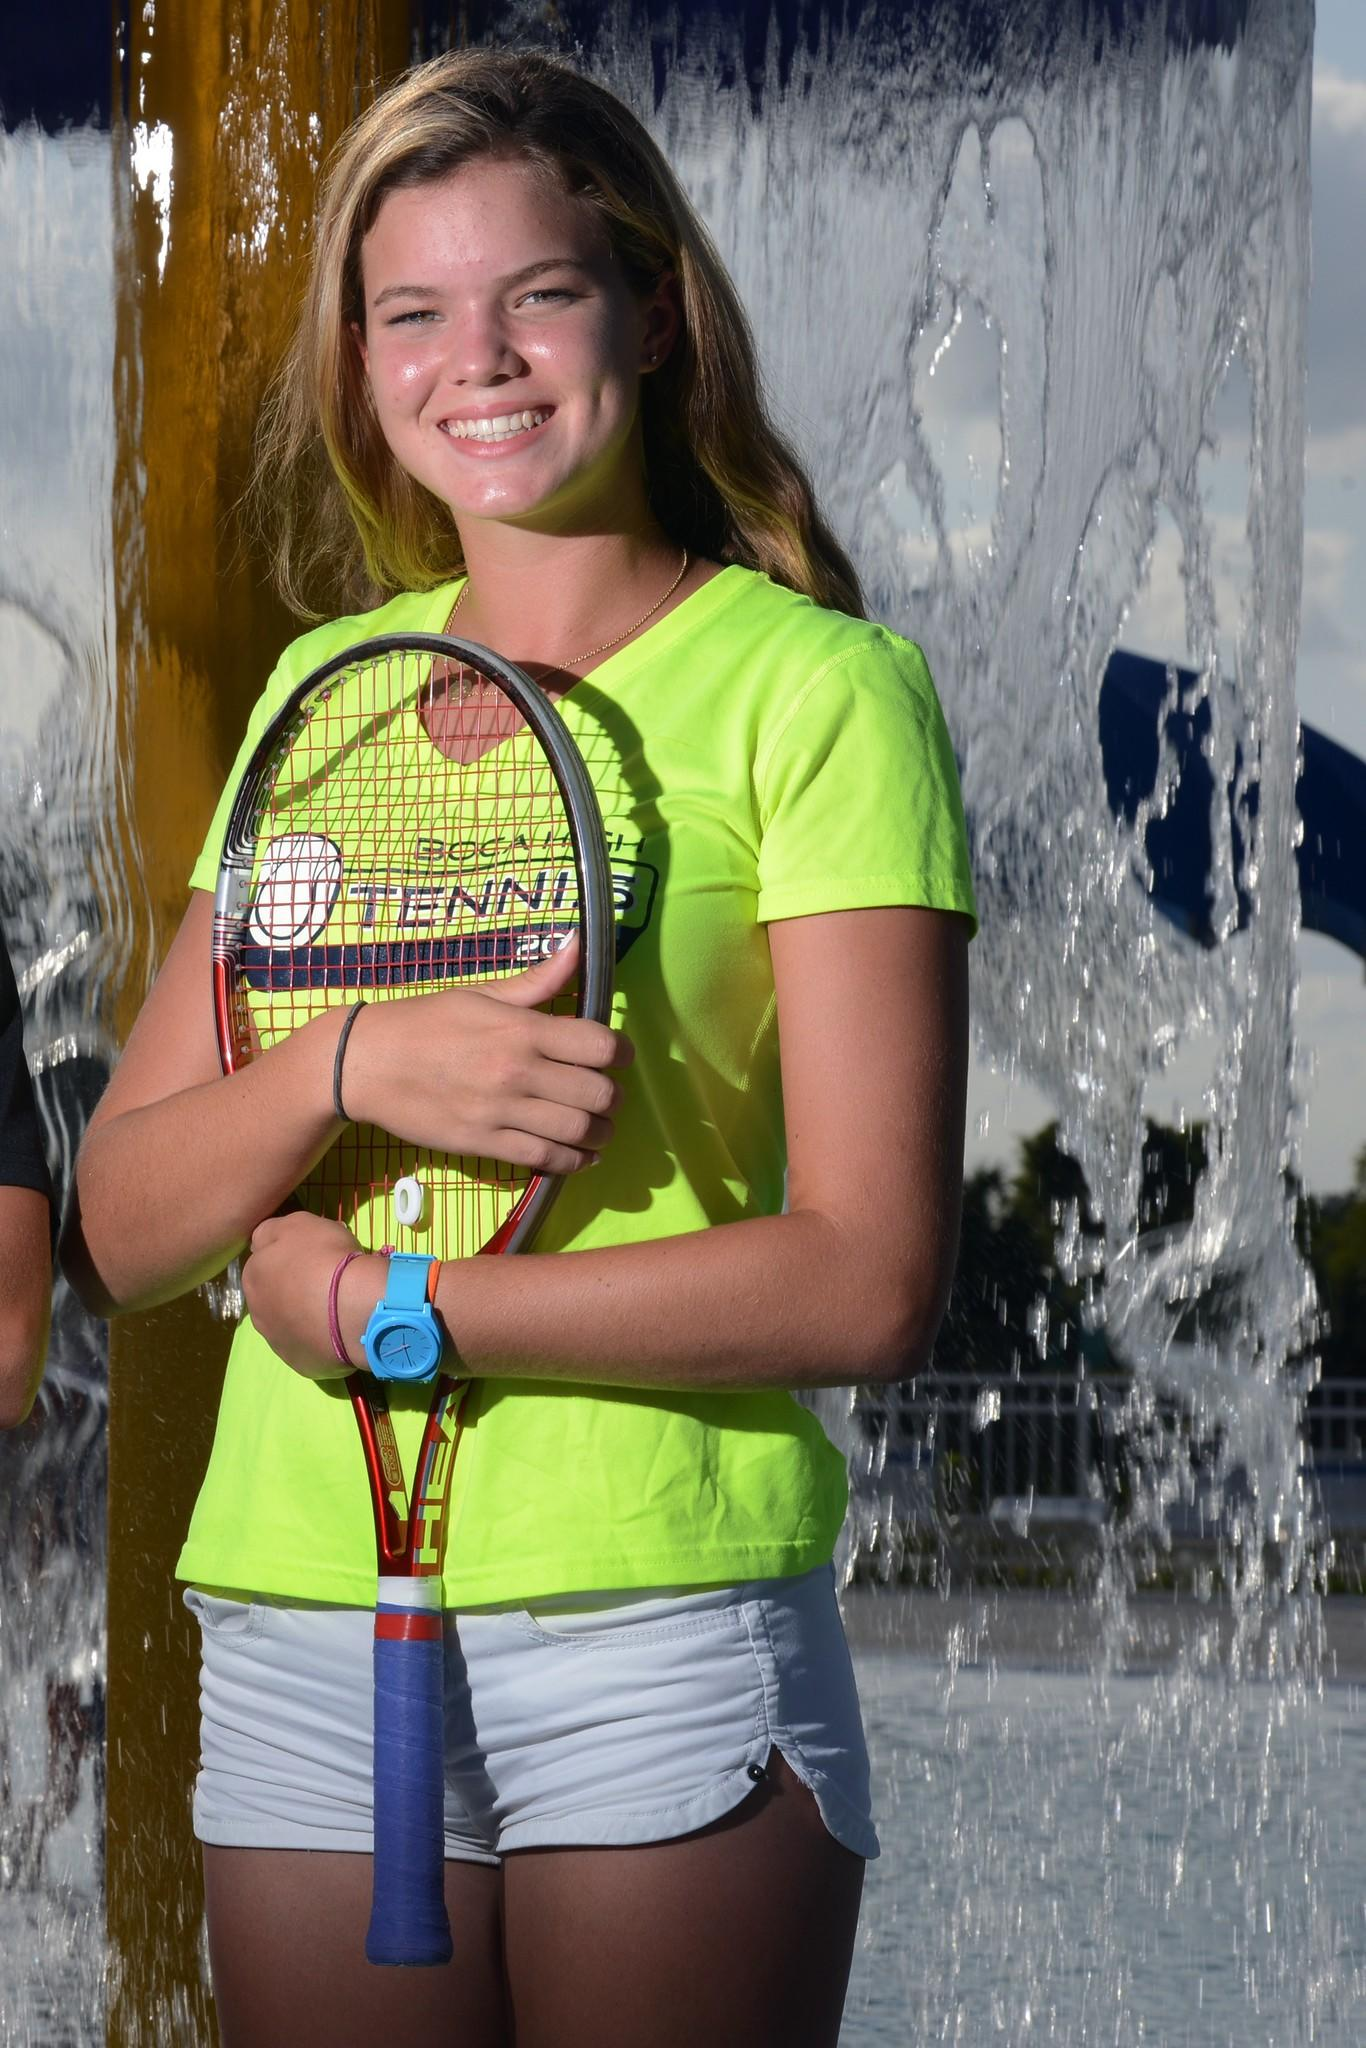 Boca Raton's Clare McKee is the Palm Beach girls tennis Player of the Year